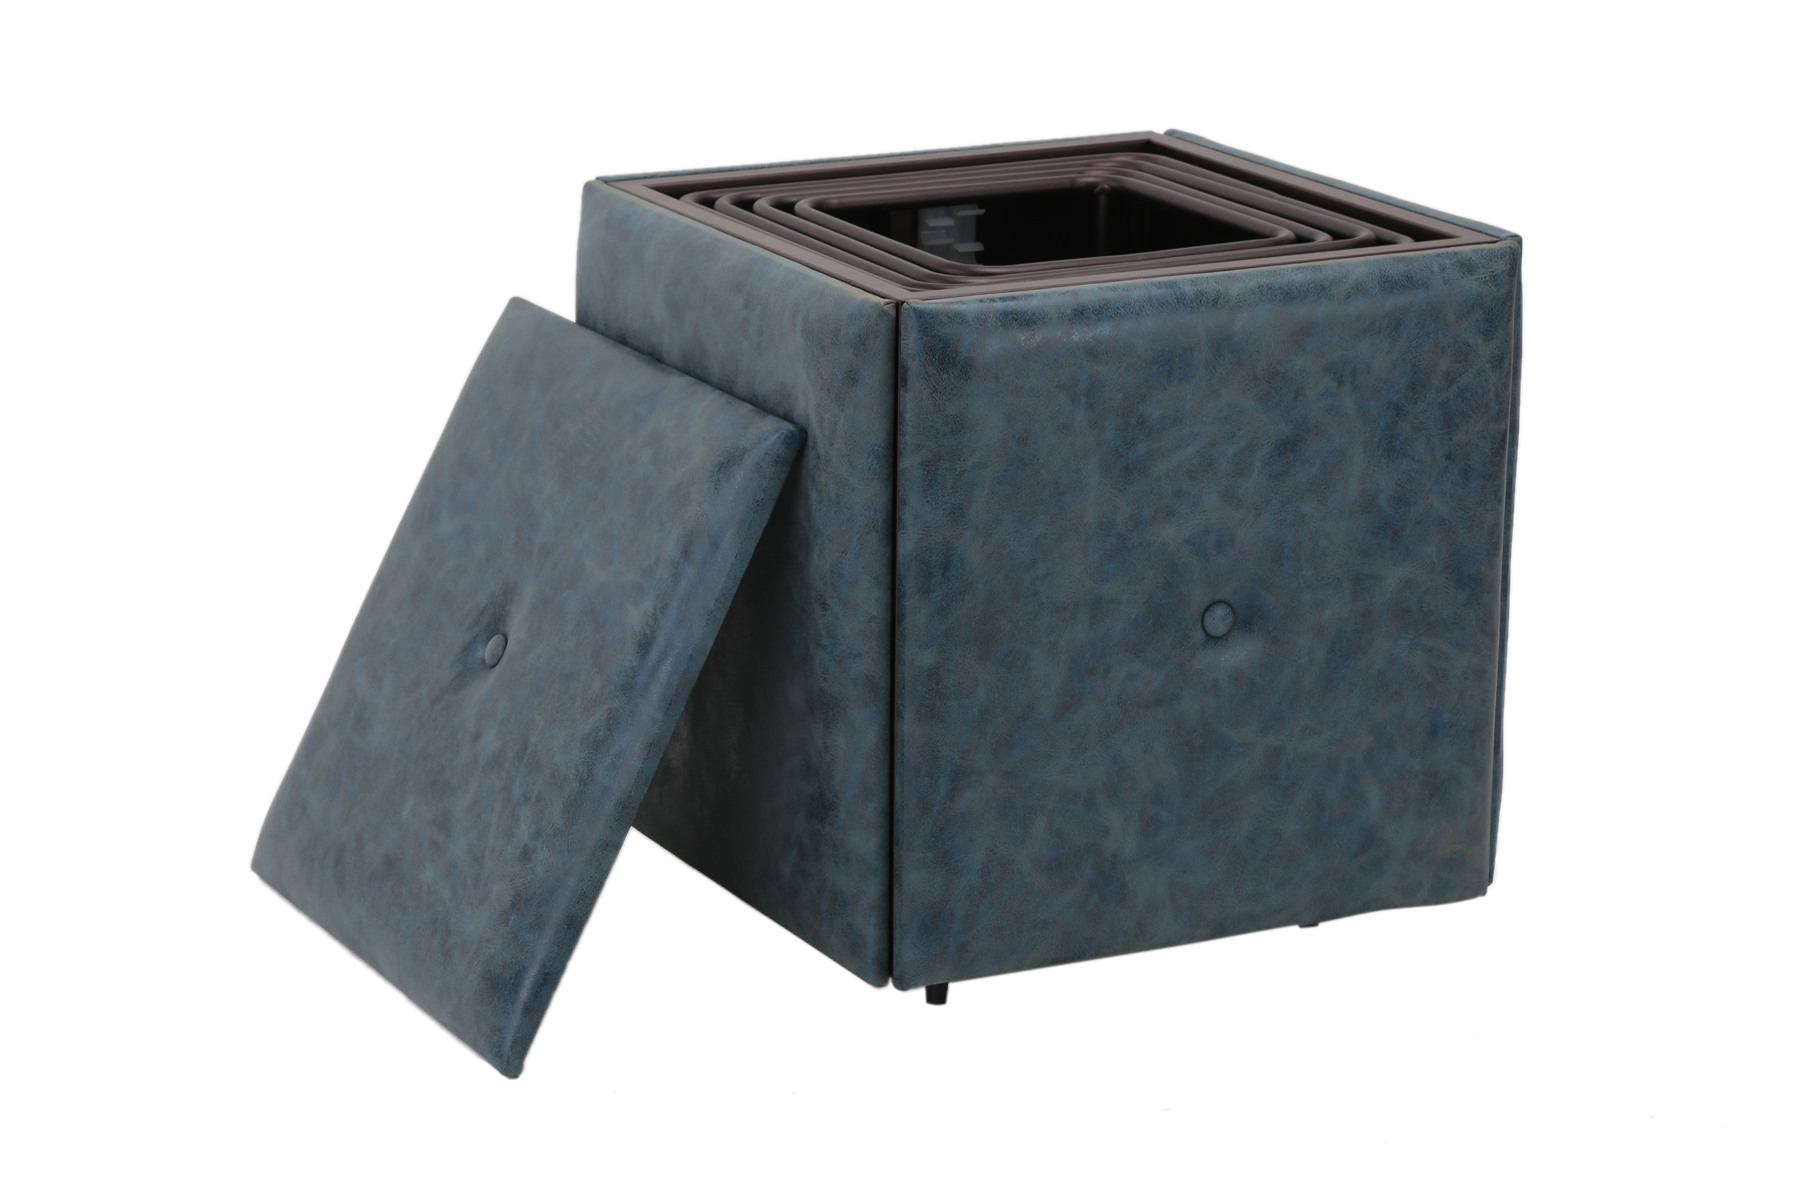 5-Piece Nesting Ottoman Stool Set Faux Leather Cover Convertible Footstool by Nova Furniture Group